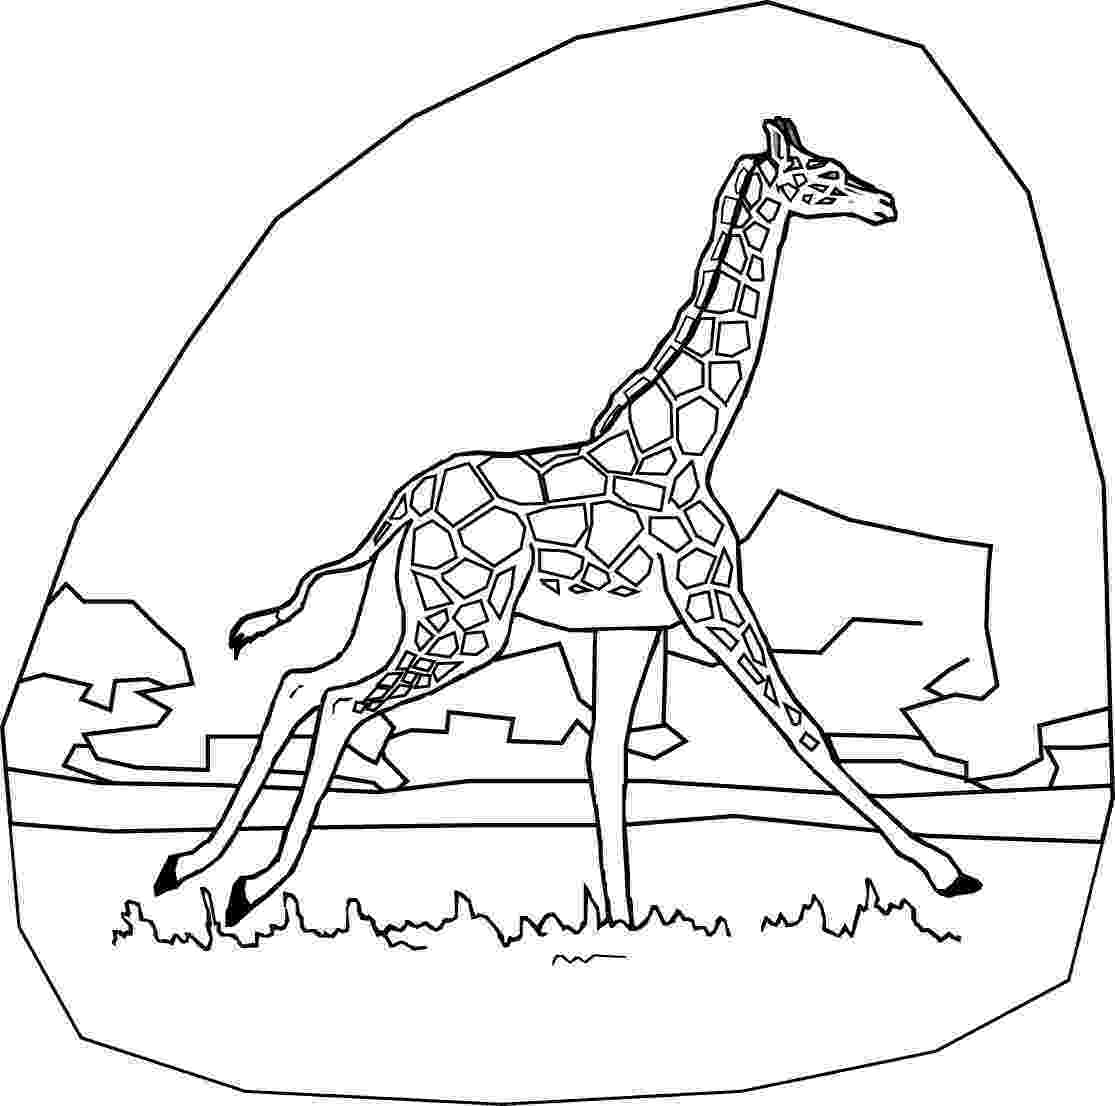 colouring pages for giraffe 10 toothy adult coloring pages printable off the cusp giraffe for pages colouring